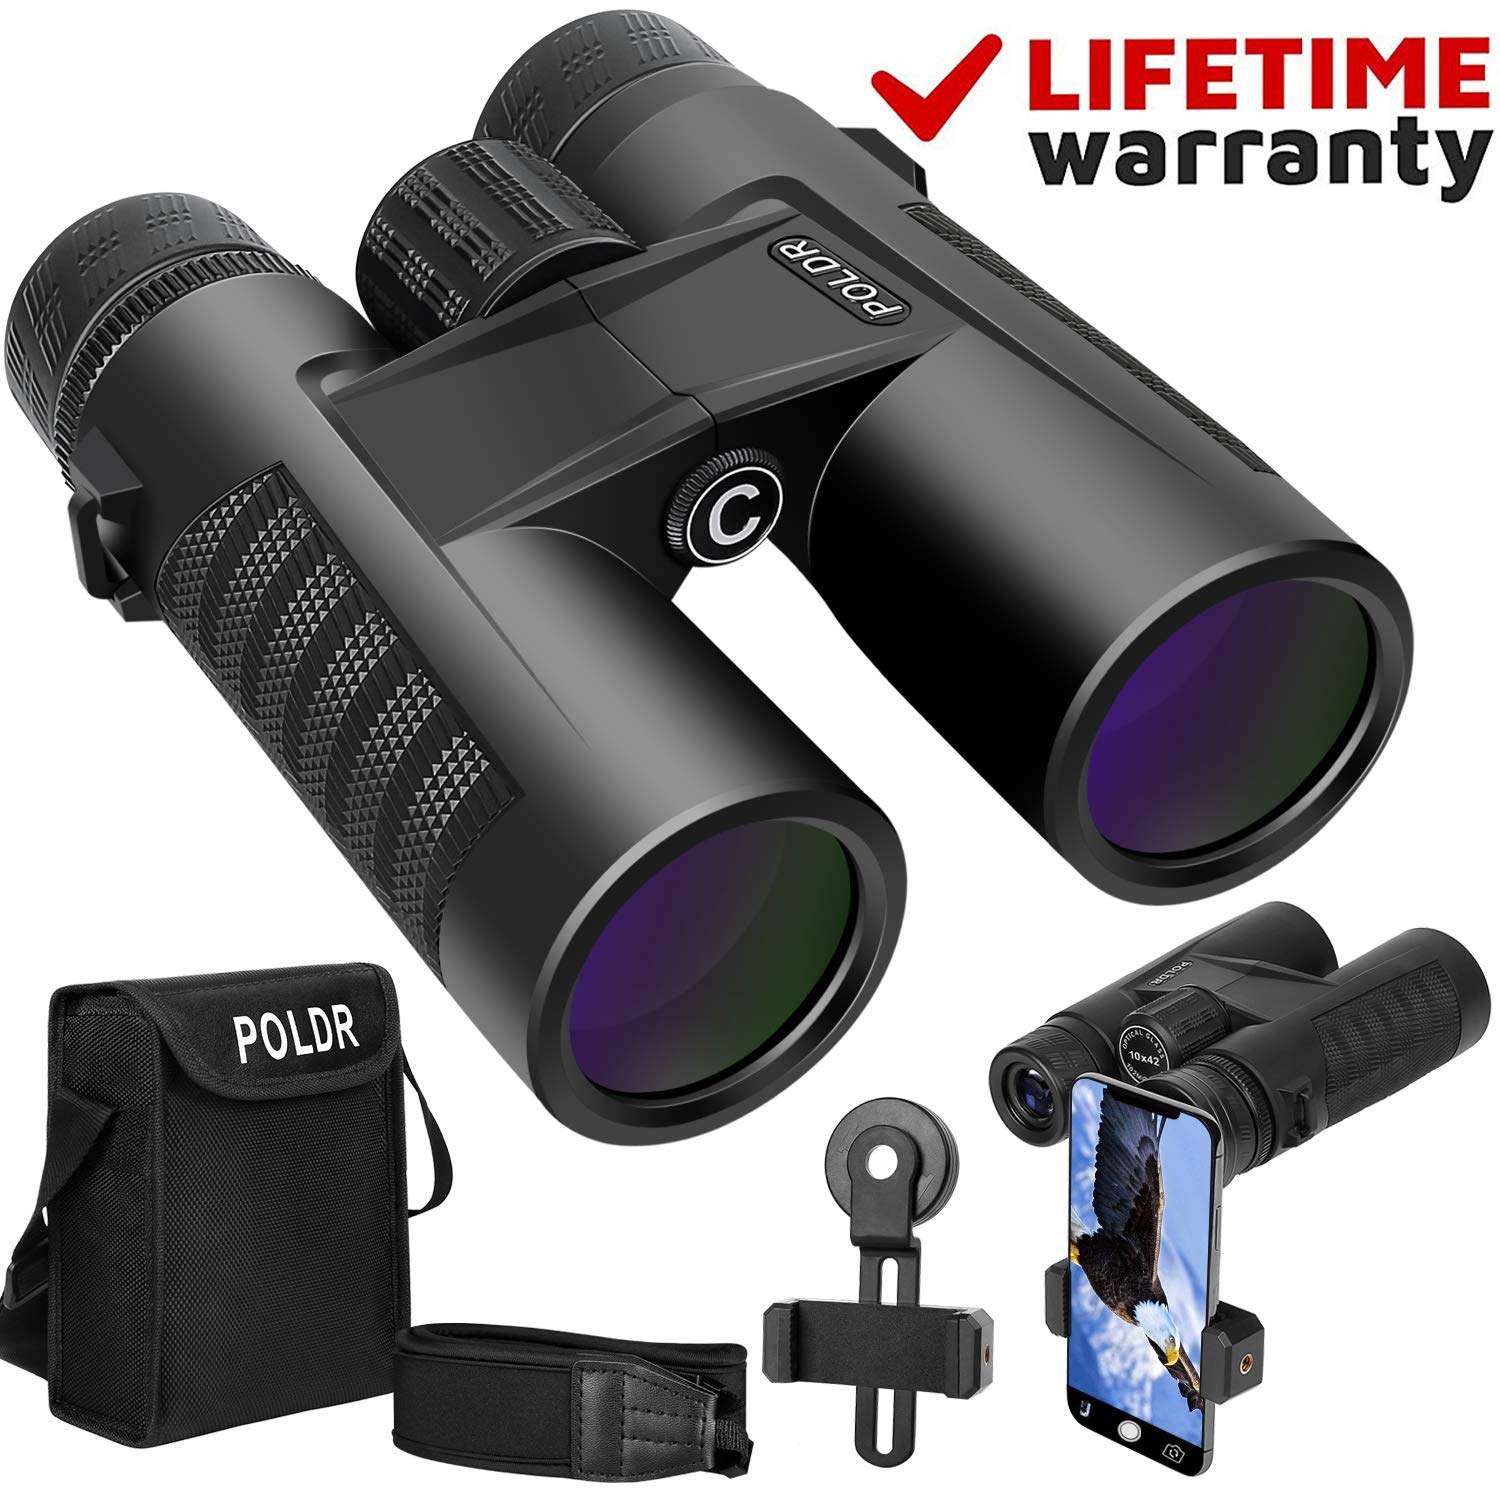 POLDR 10x42 Powerful Full-Size Binoculars for Adults, Waterproof Compact HD Binoculars for Hunting Concerts Bird Watching Travel Hiking BAK4 Prism FMC Lens-with Smartphone Adapter Strap Carrying Bag